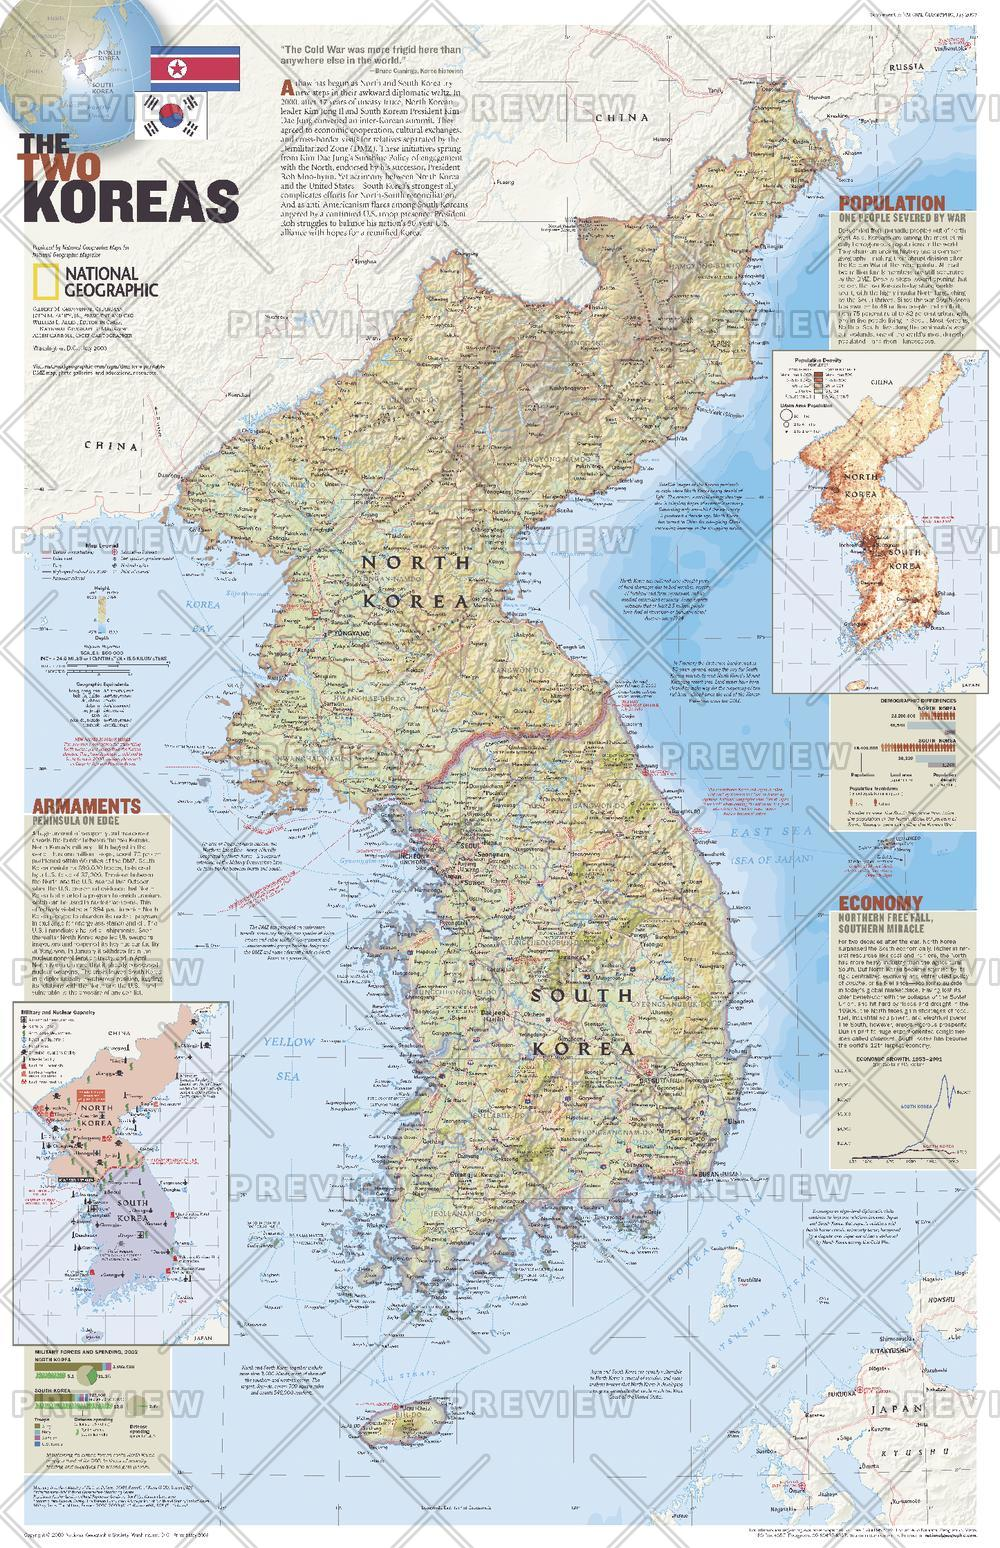 The Two Koreas - Published 2003